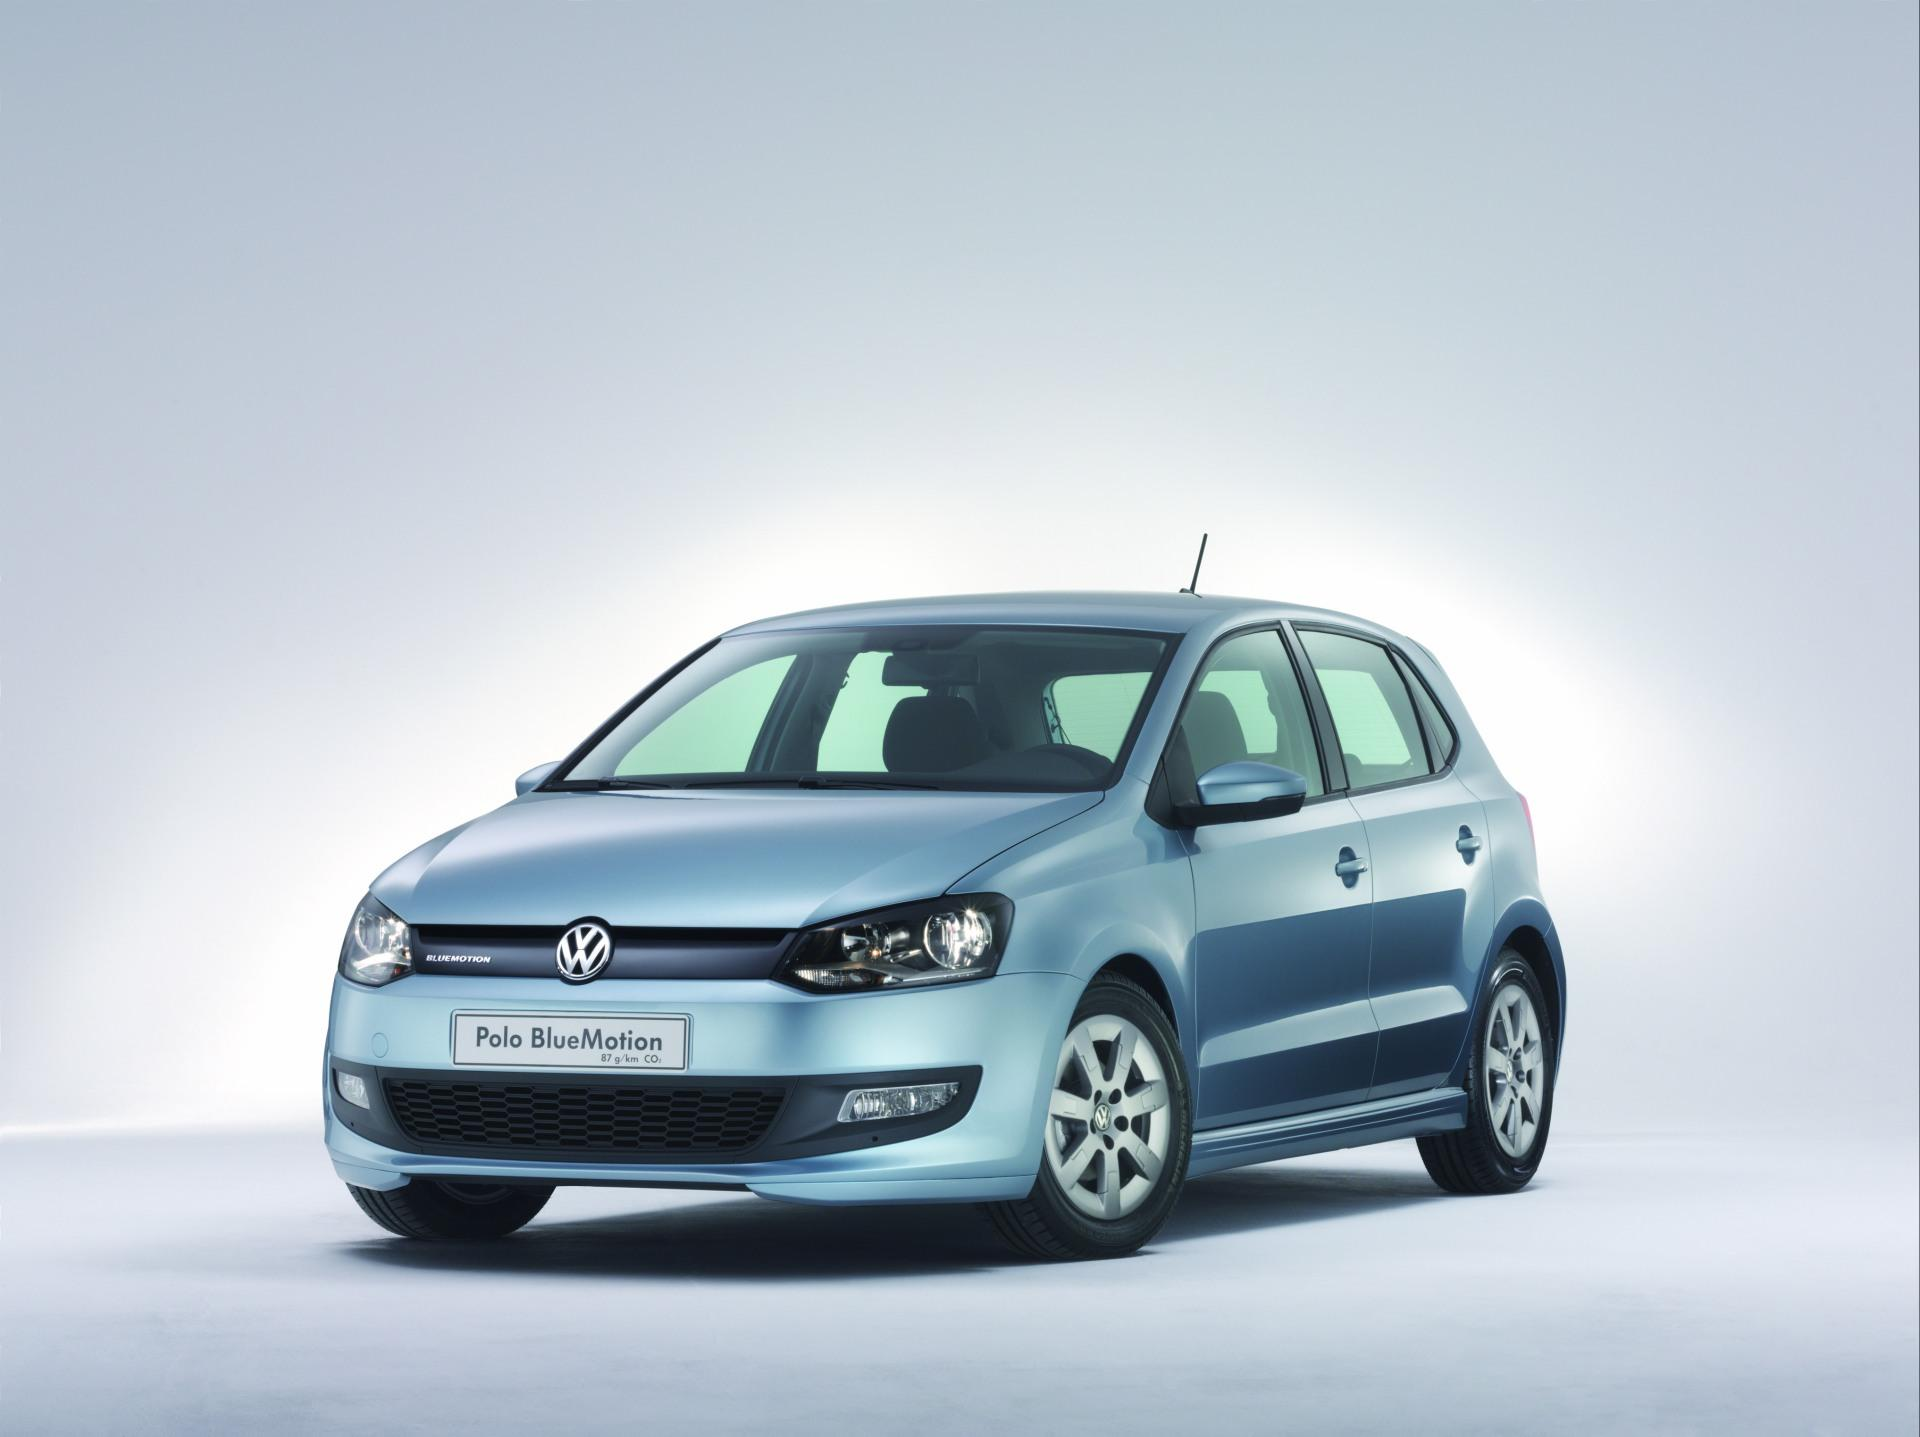 2009 Volkswagen Polo BlueMotion Concept News and Information 1920x1437